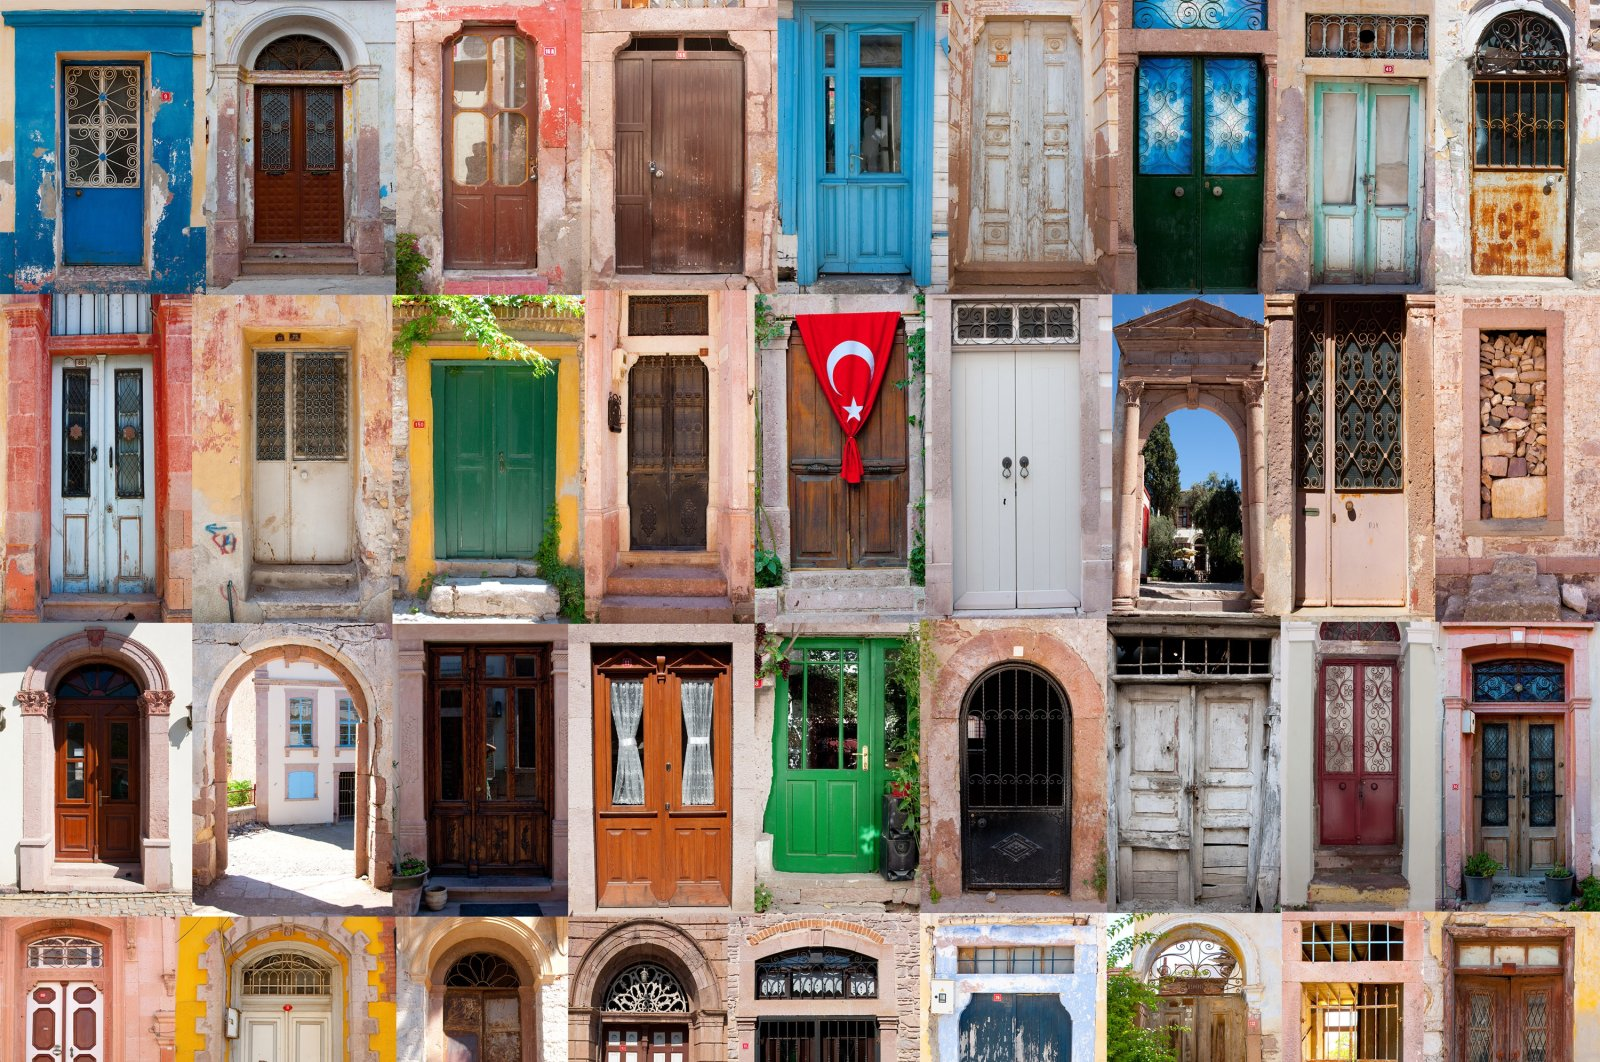 Although they may look different from the outside, many Turkish houses share common cultural items. (Shutterstock Photo)